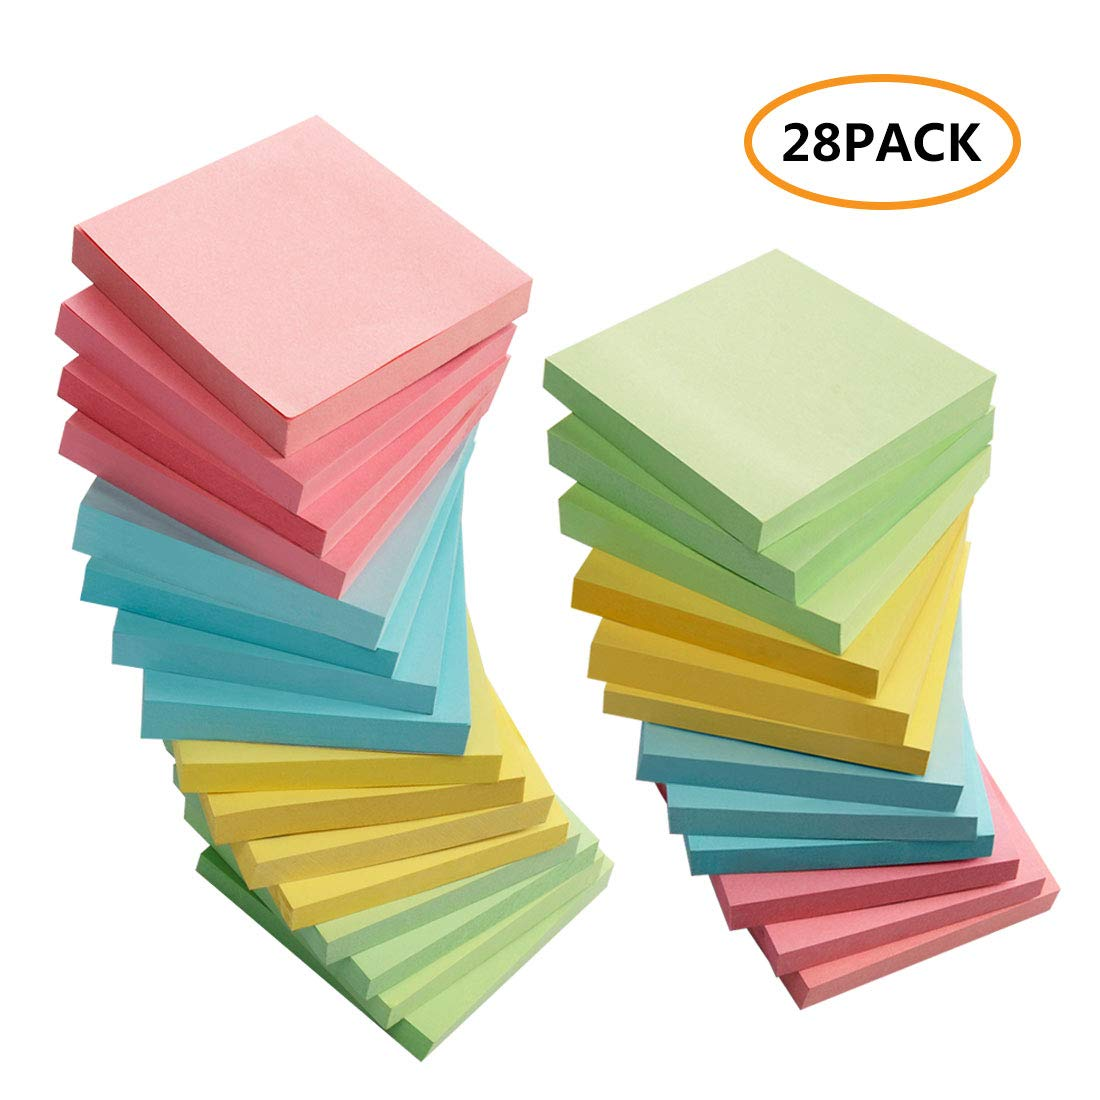 Sticky Notes 3x3 Inches, 28 Pack Colored Self-Sticky Notes Pad, 100 Sheets/Pad, 4 Colors by HappyHapi